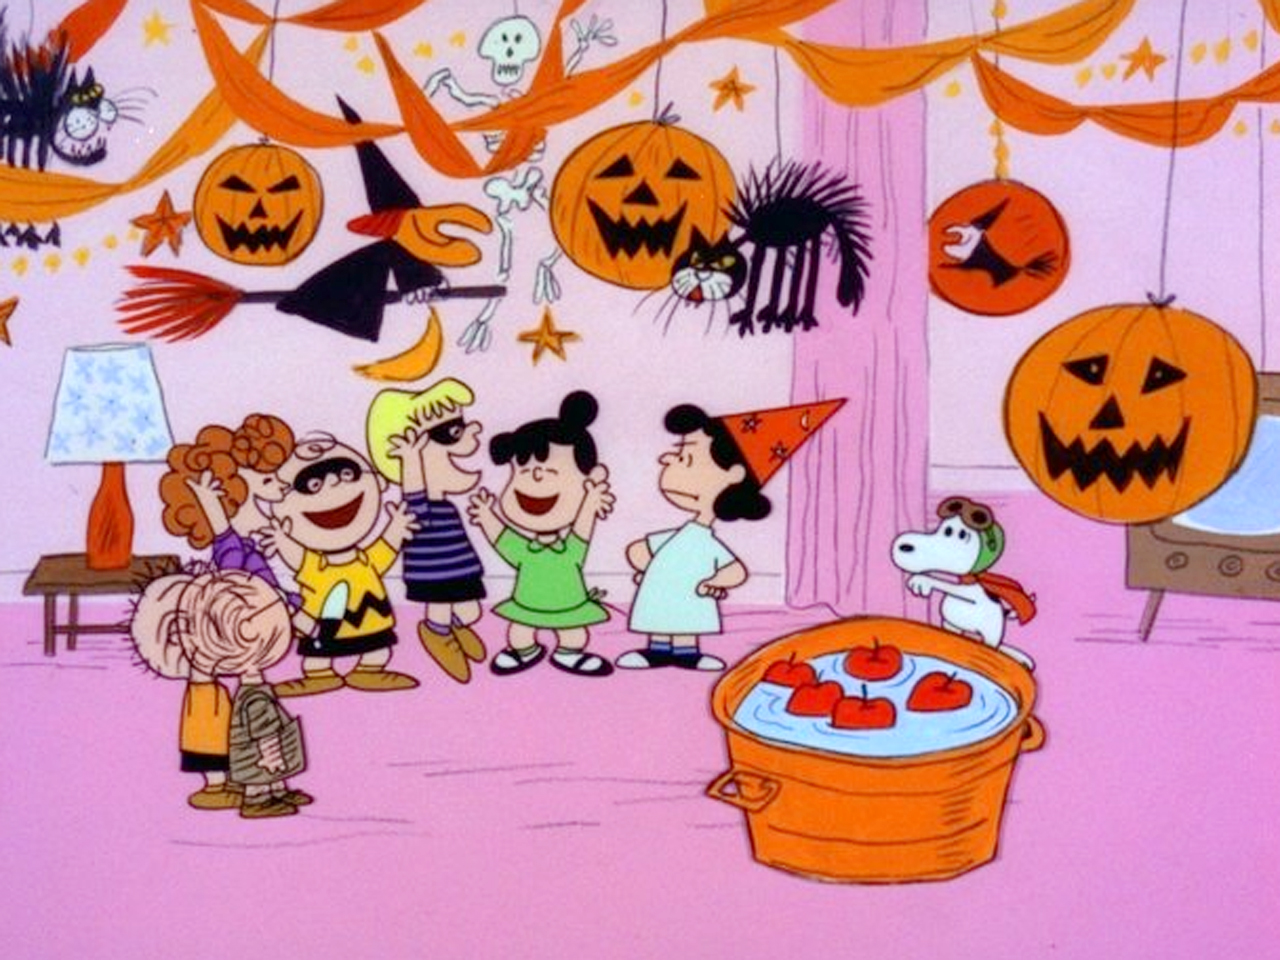 Are Charlie Brown and the Peanuts gang too mean for today's kids ...